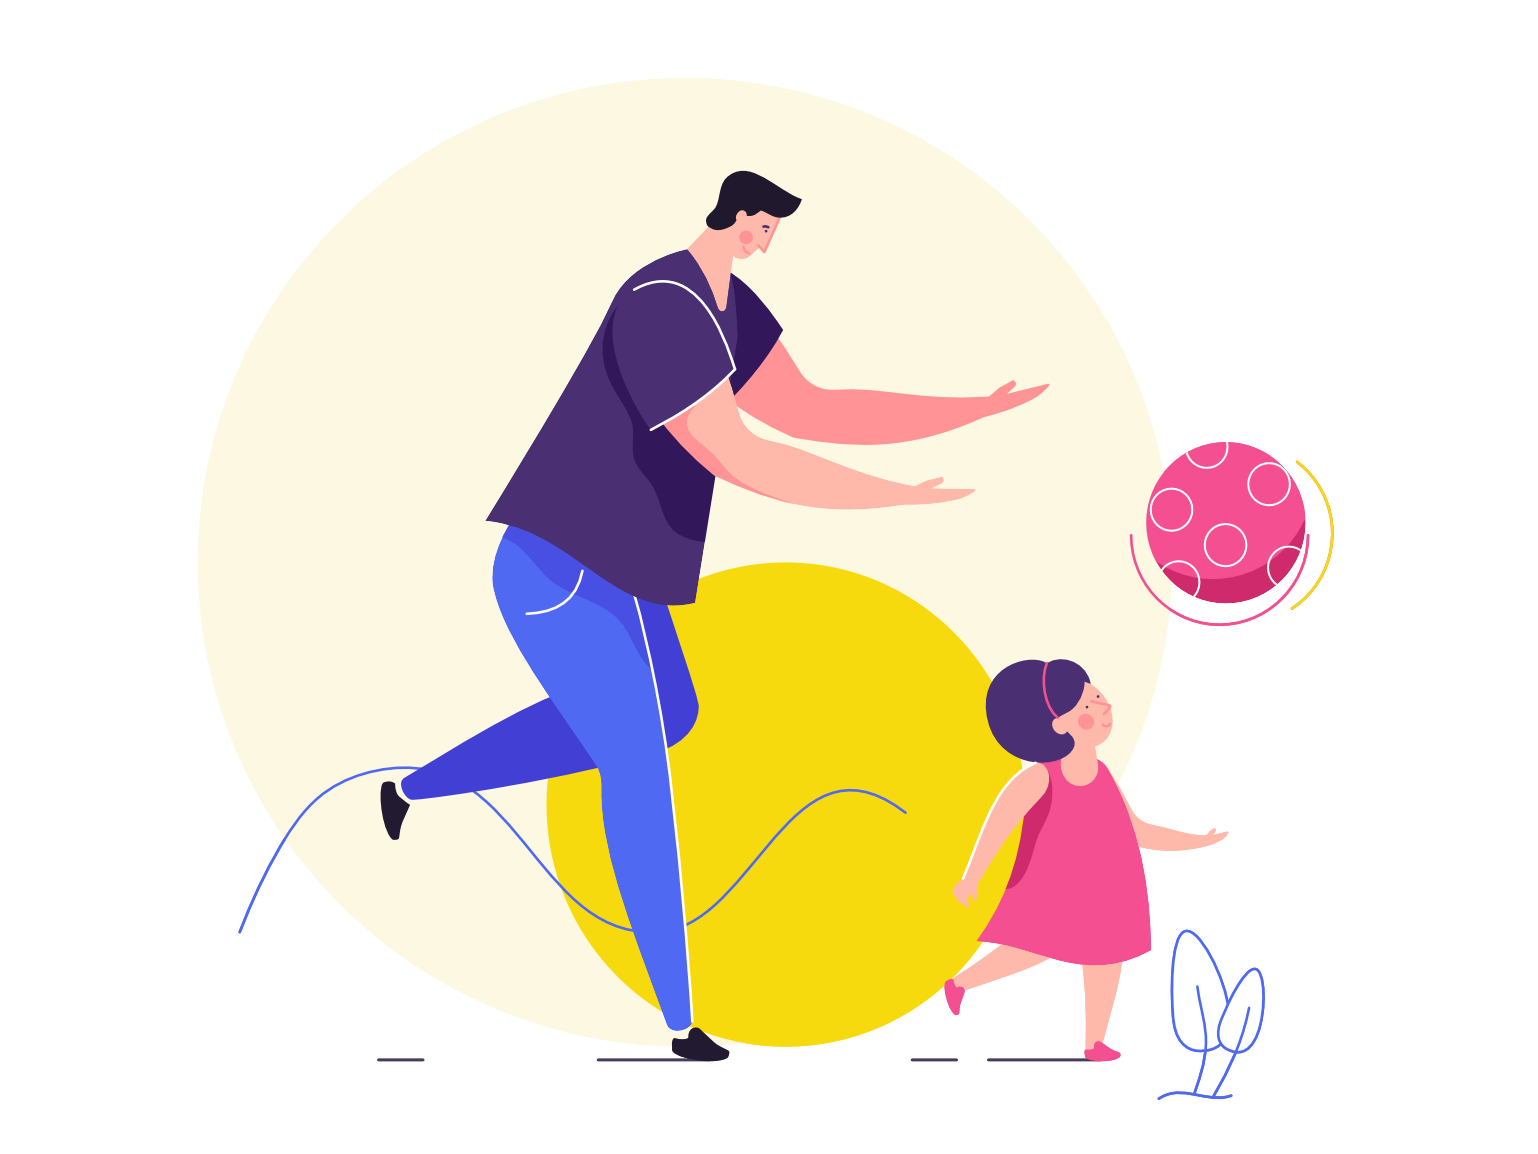 Family Time father child simple flat affinity designer illustration character vector